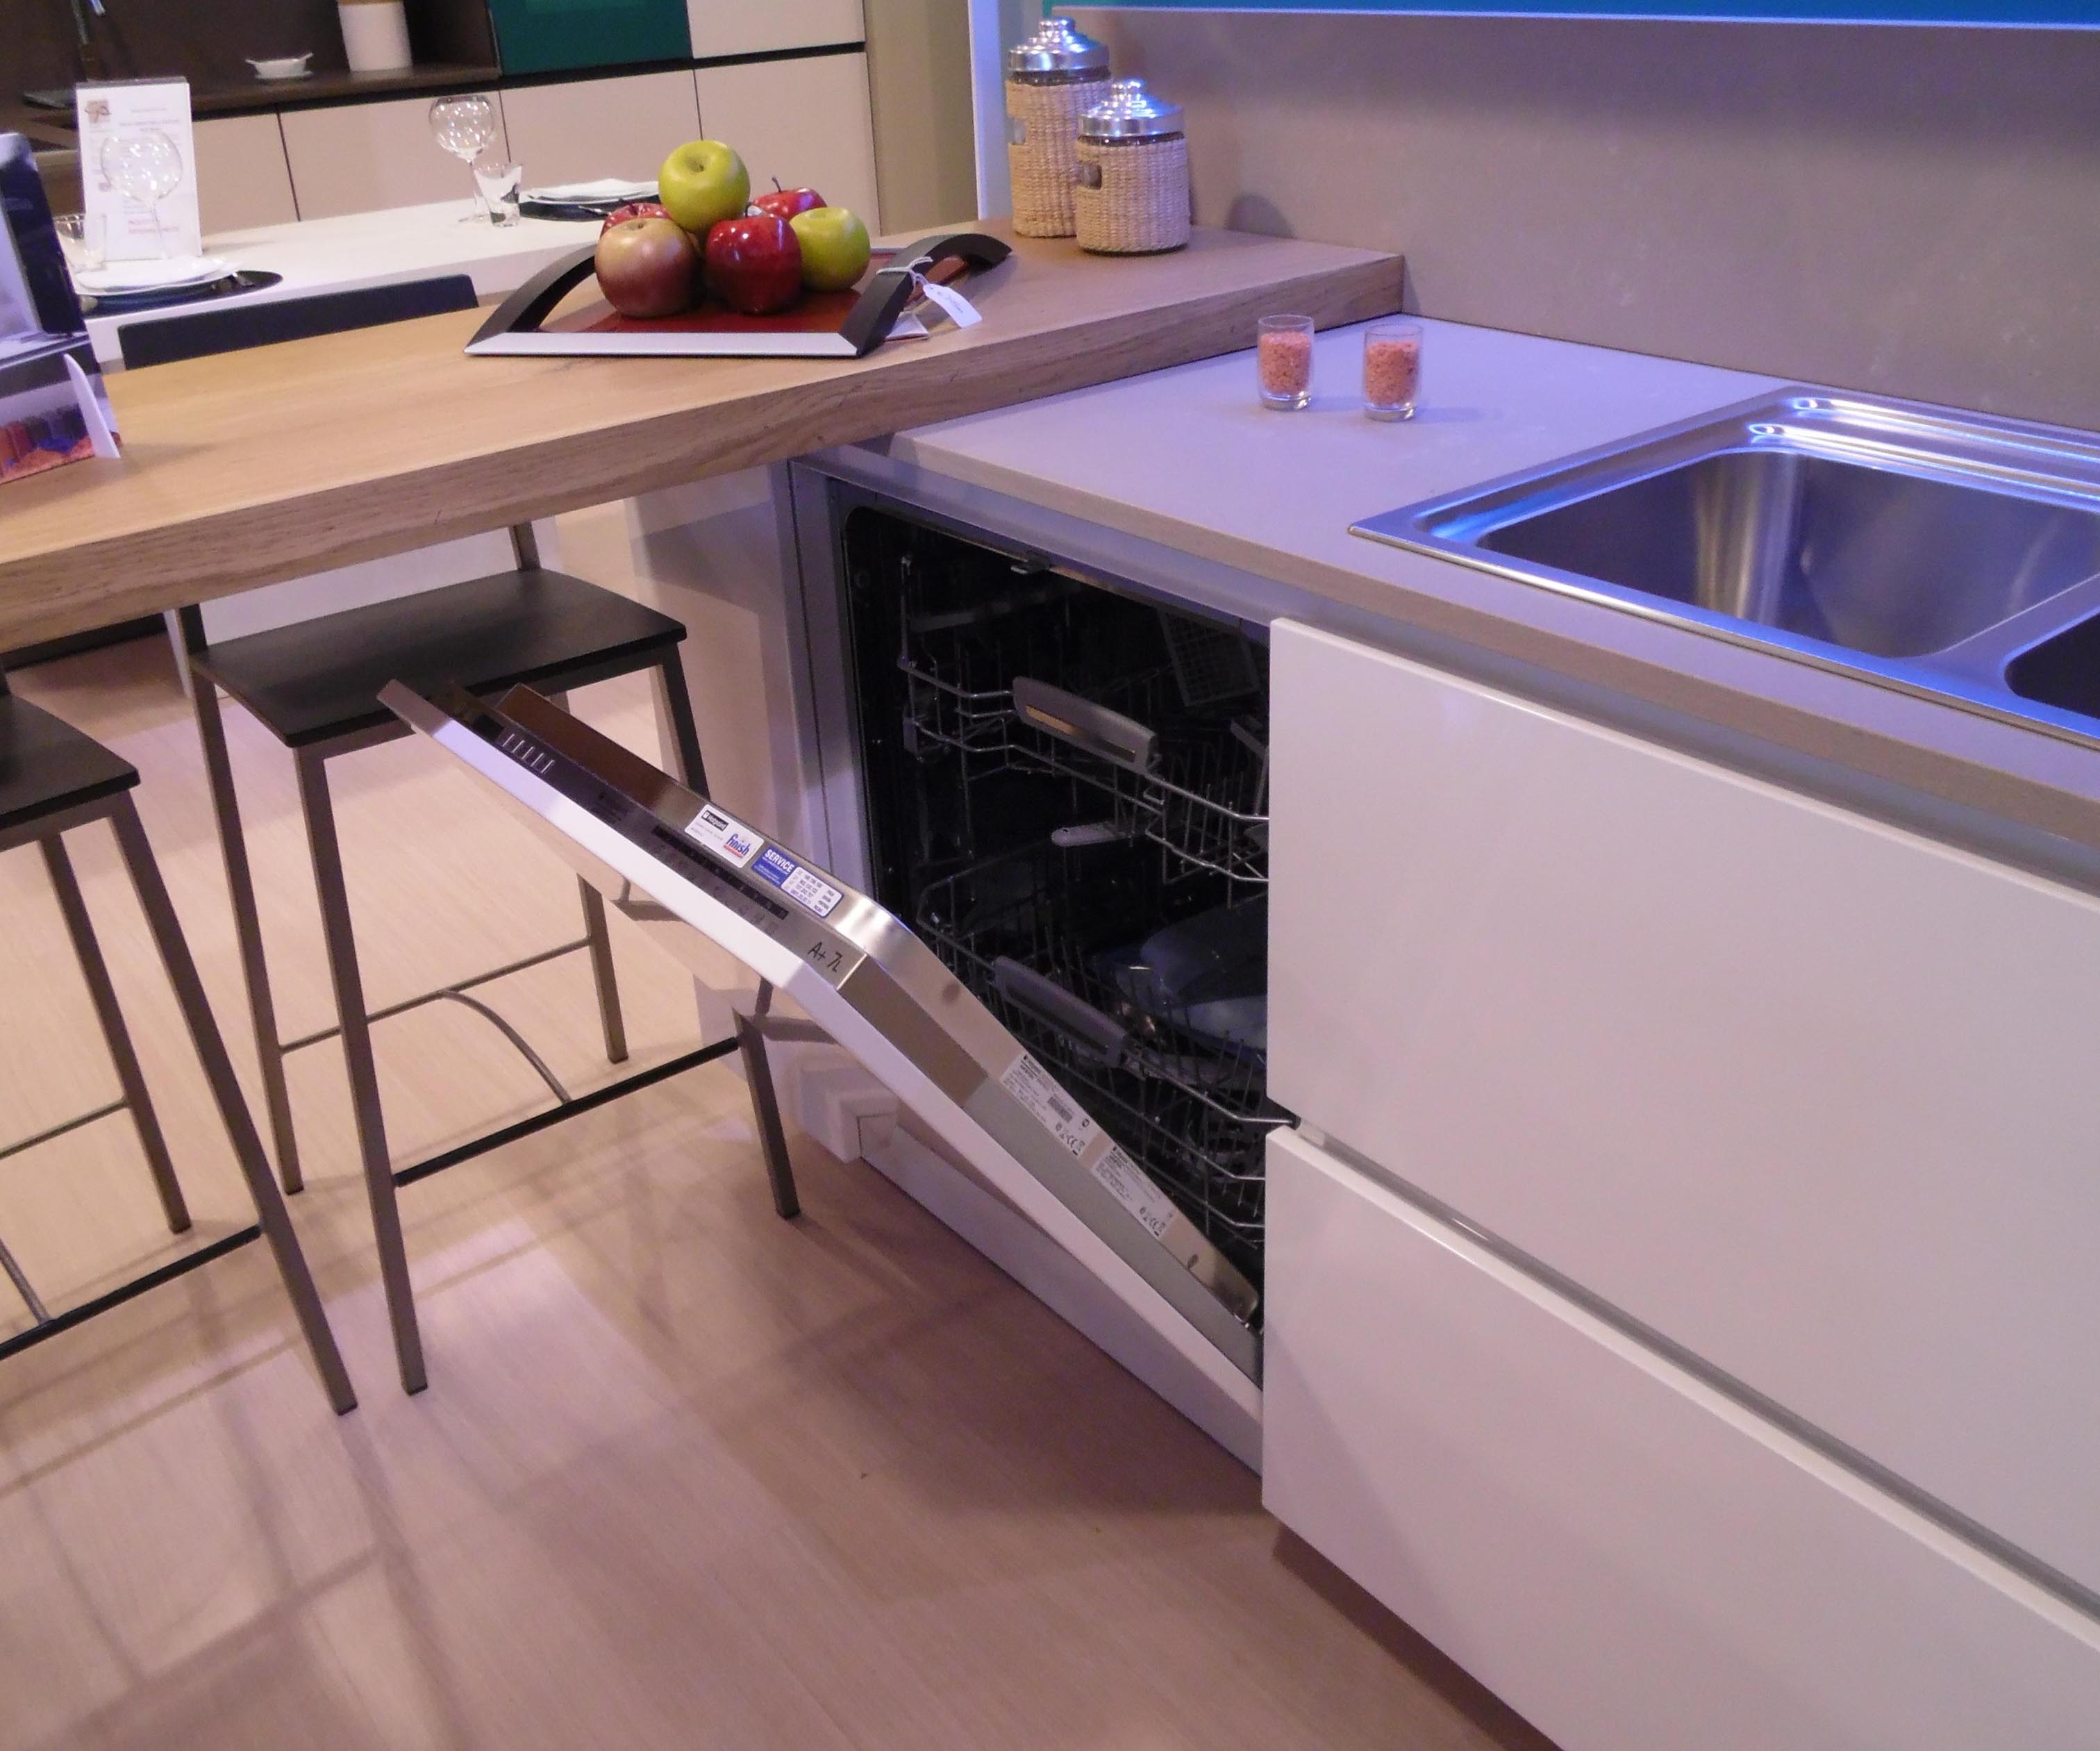 Best Del Tongo Cucine Prezzi Gallery - harrop.us - harrop.us